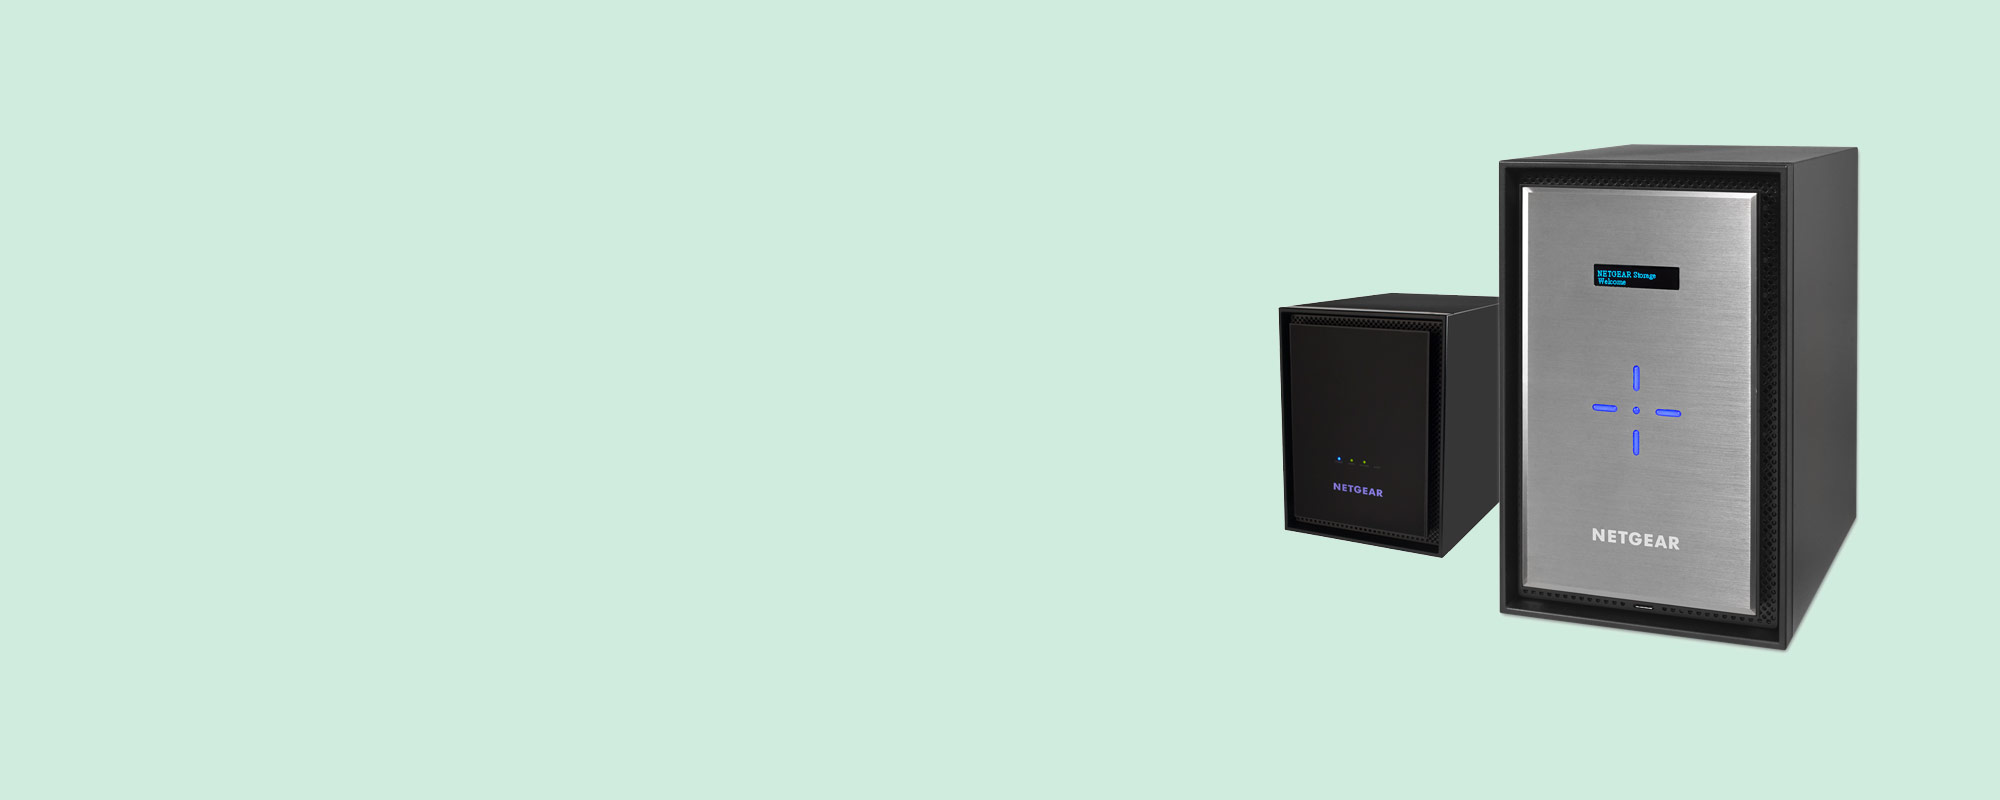 NETGEAR ReadyNAS - Remote Network Monitoring and Endpoint Management